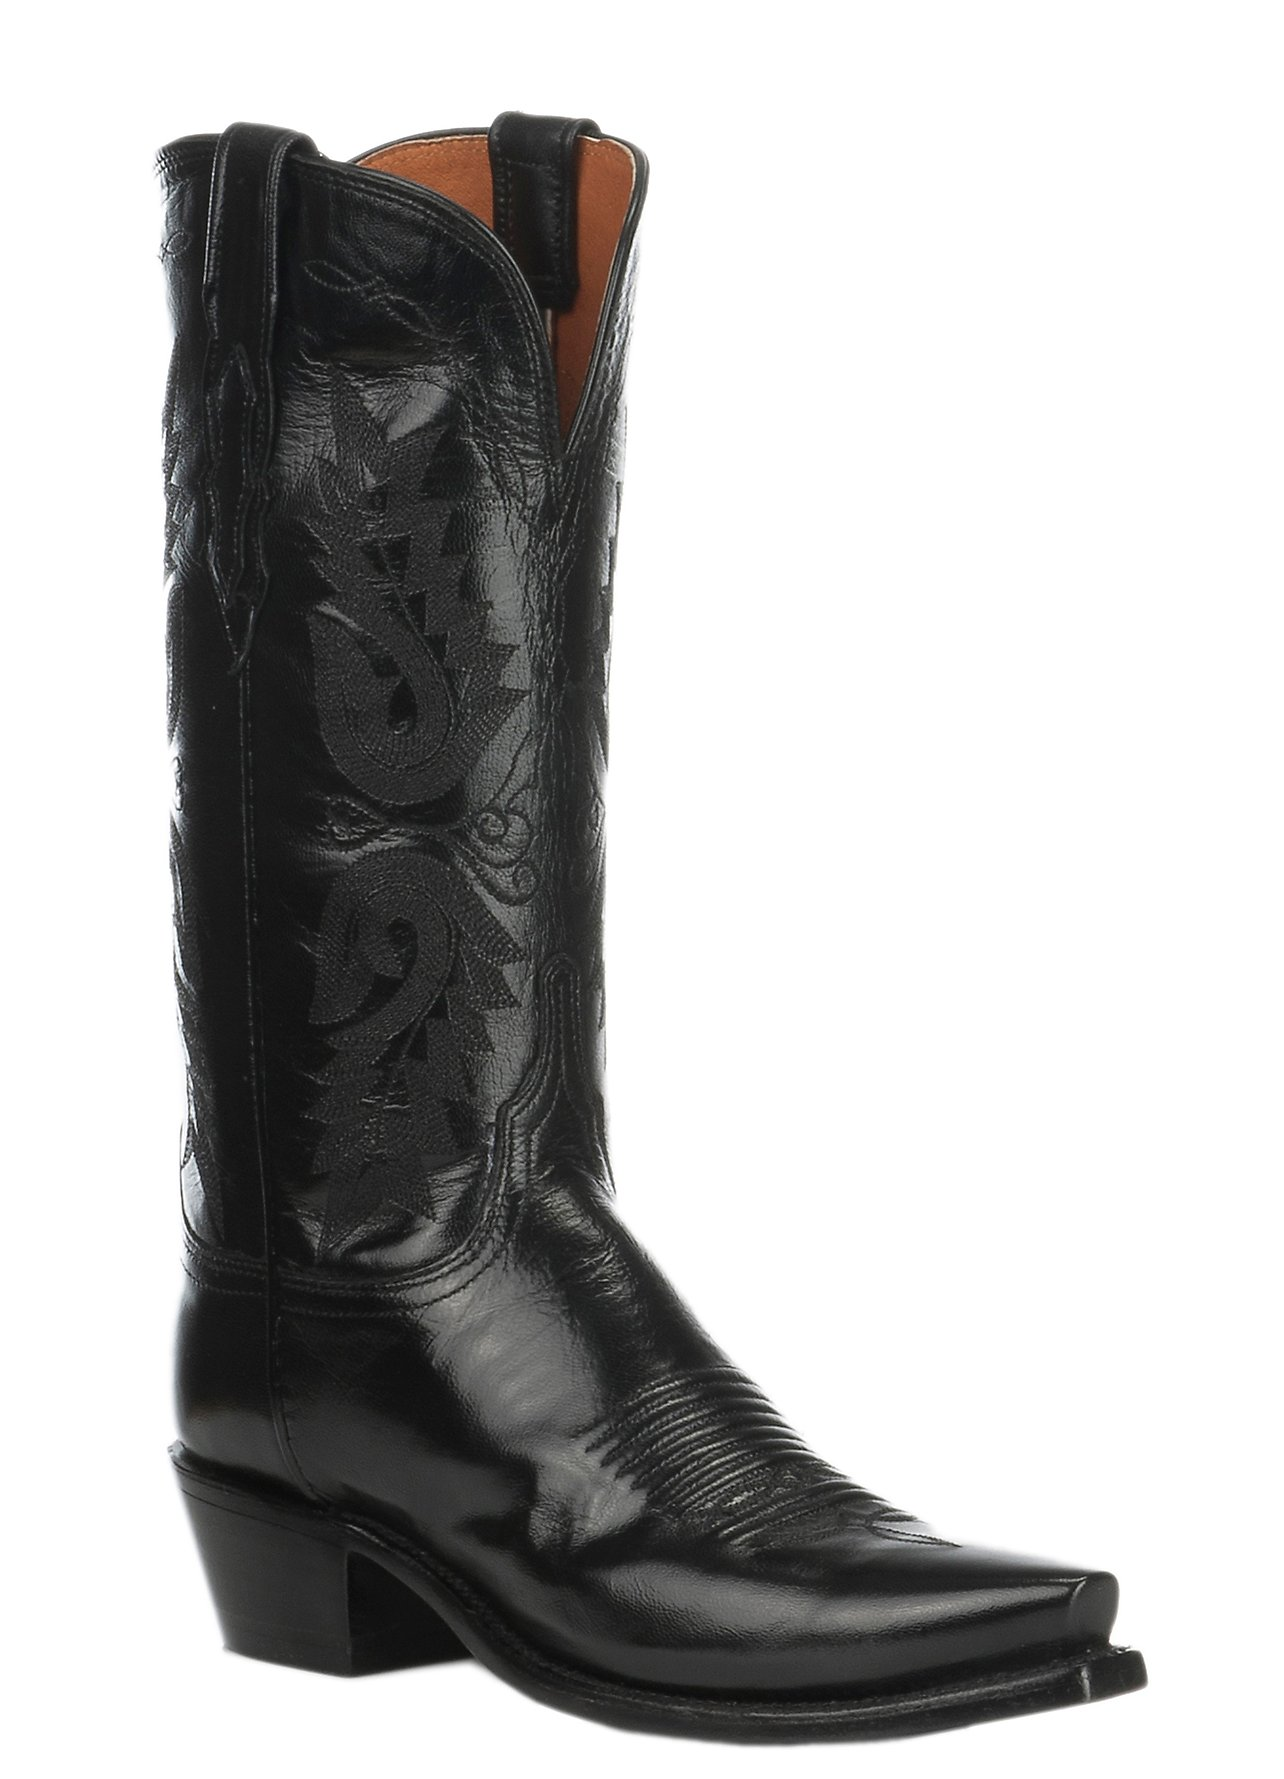 These authentic western black leather womens cowboy boots from Laredo feature a comfort cushion insole, cowboy heel, and r toe. Constructed from high quality materials, these boots are made to last. If youre looking to add some western flare to your wardrobe, these sleek and stylish boots .